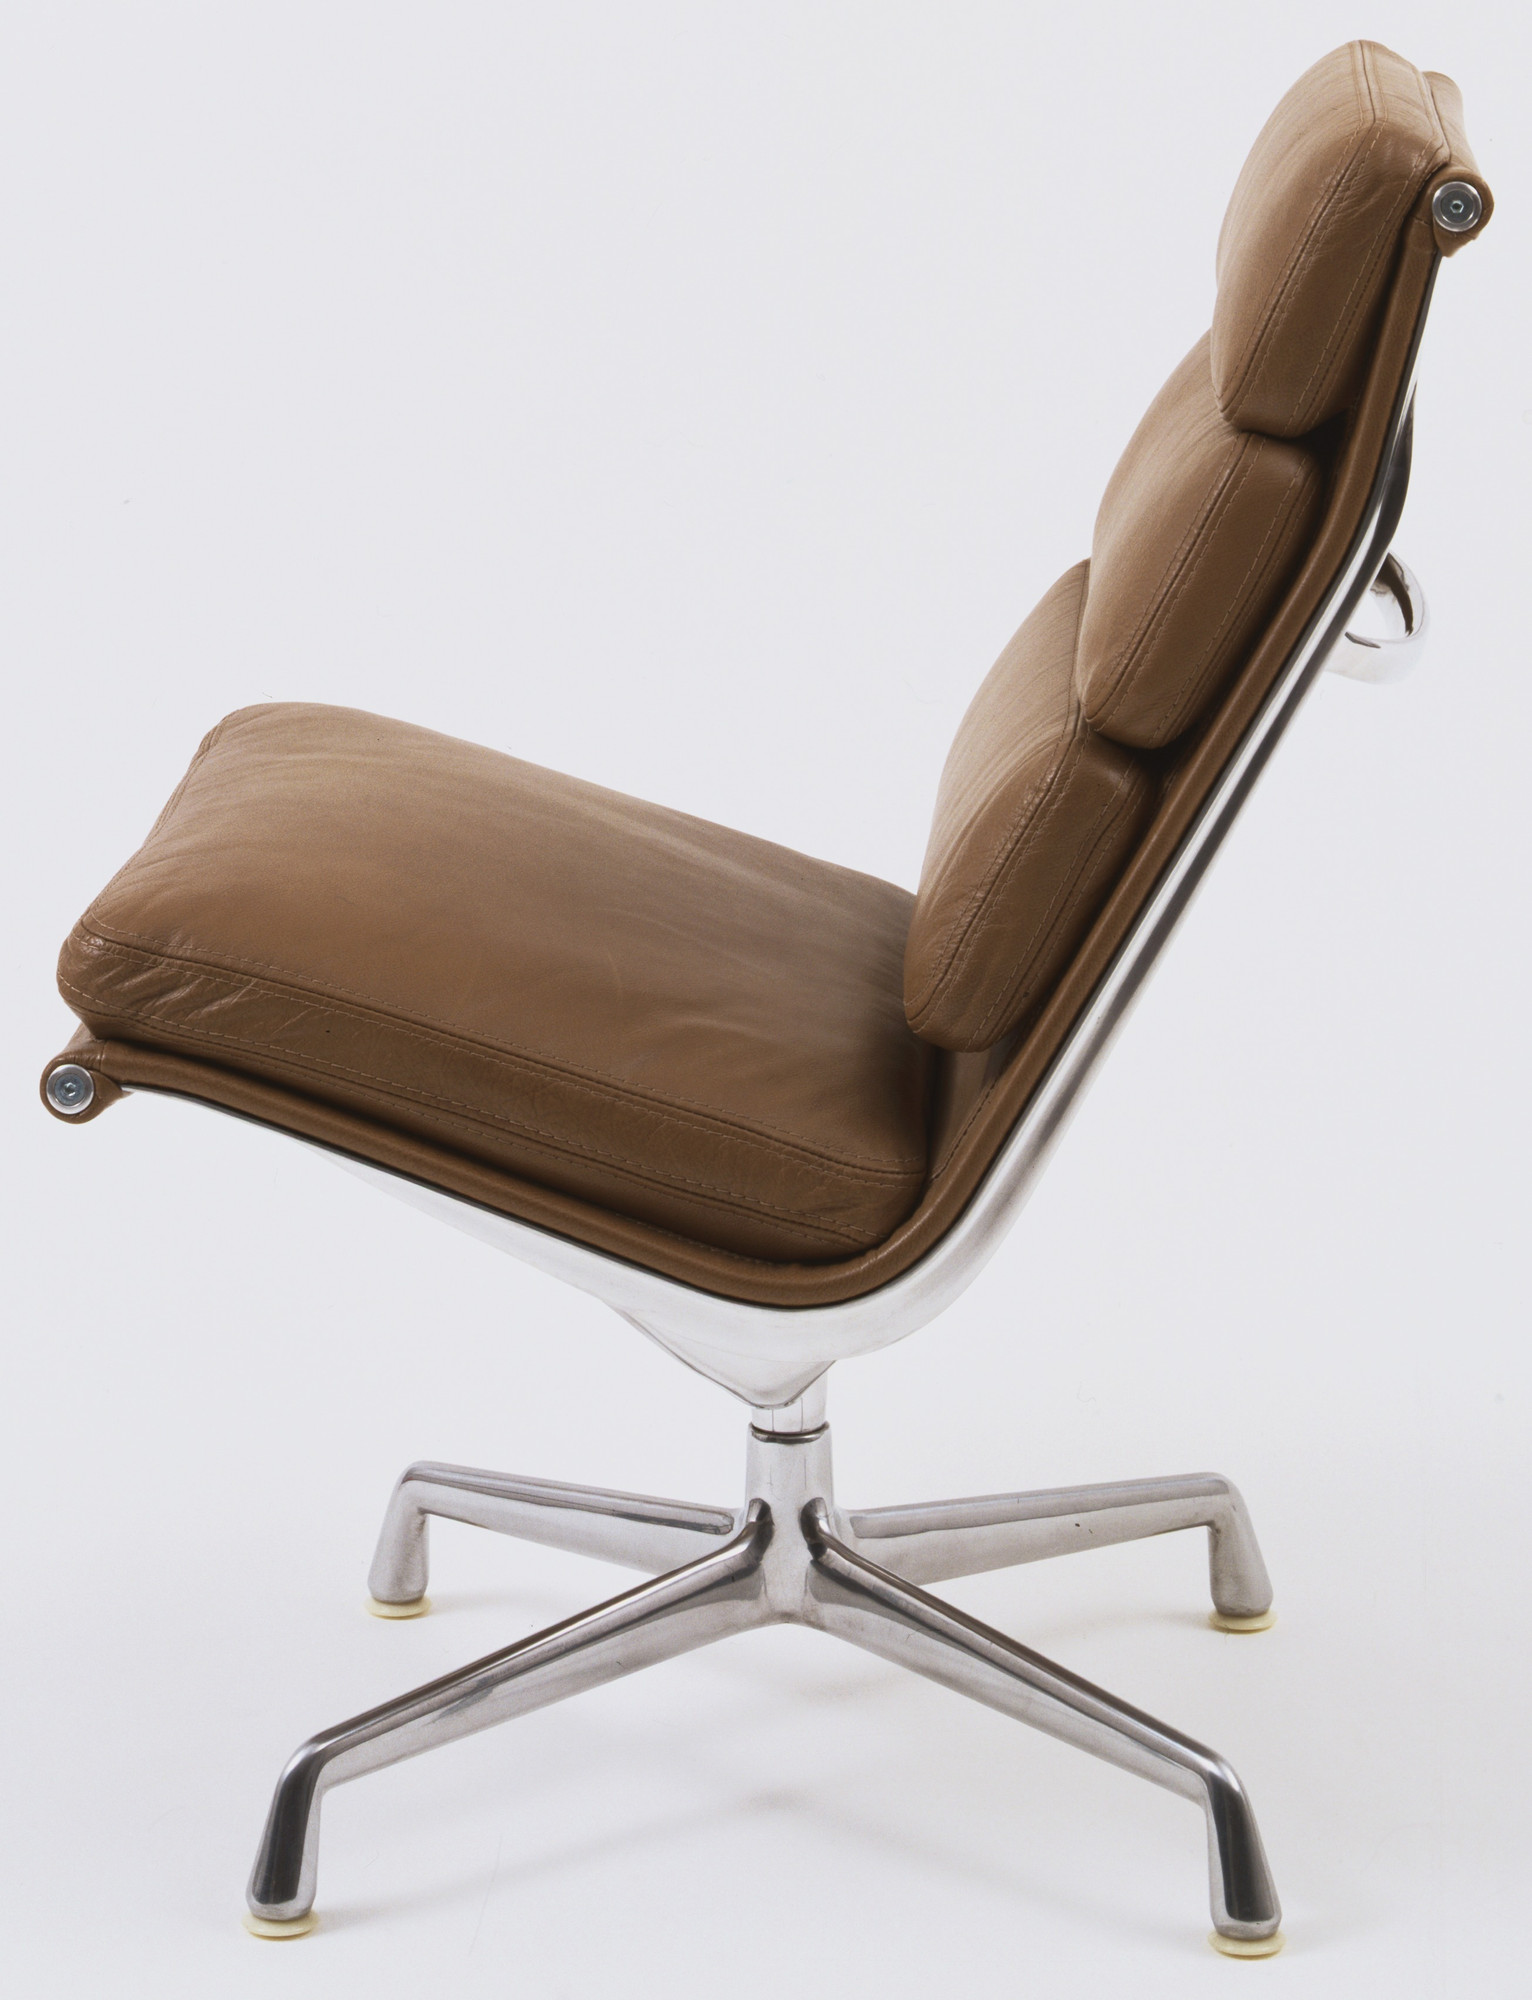 charles eames lounge chair 1969 moma